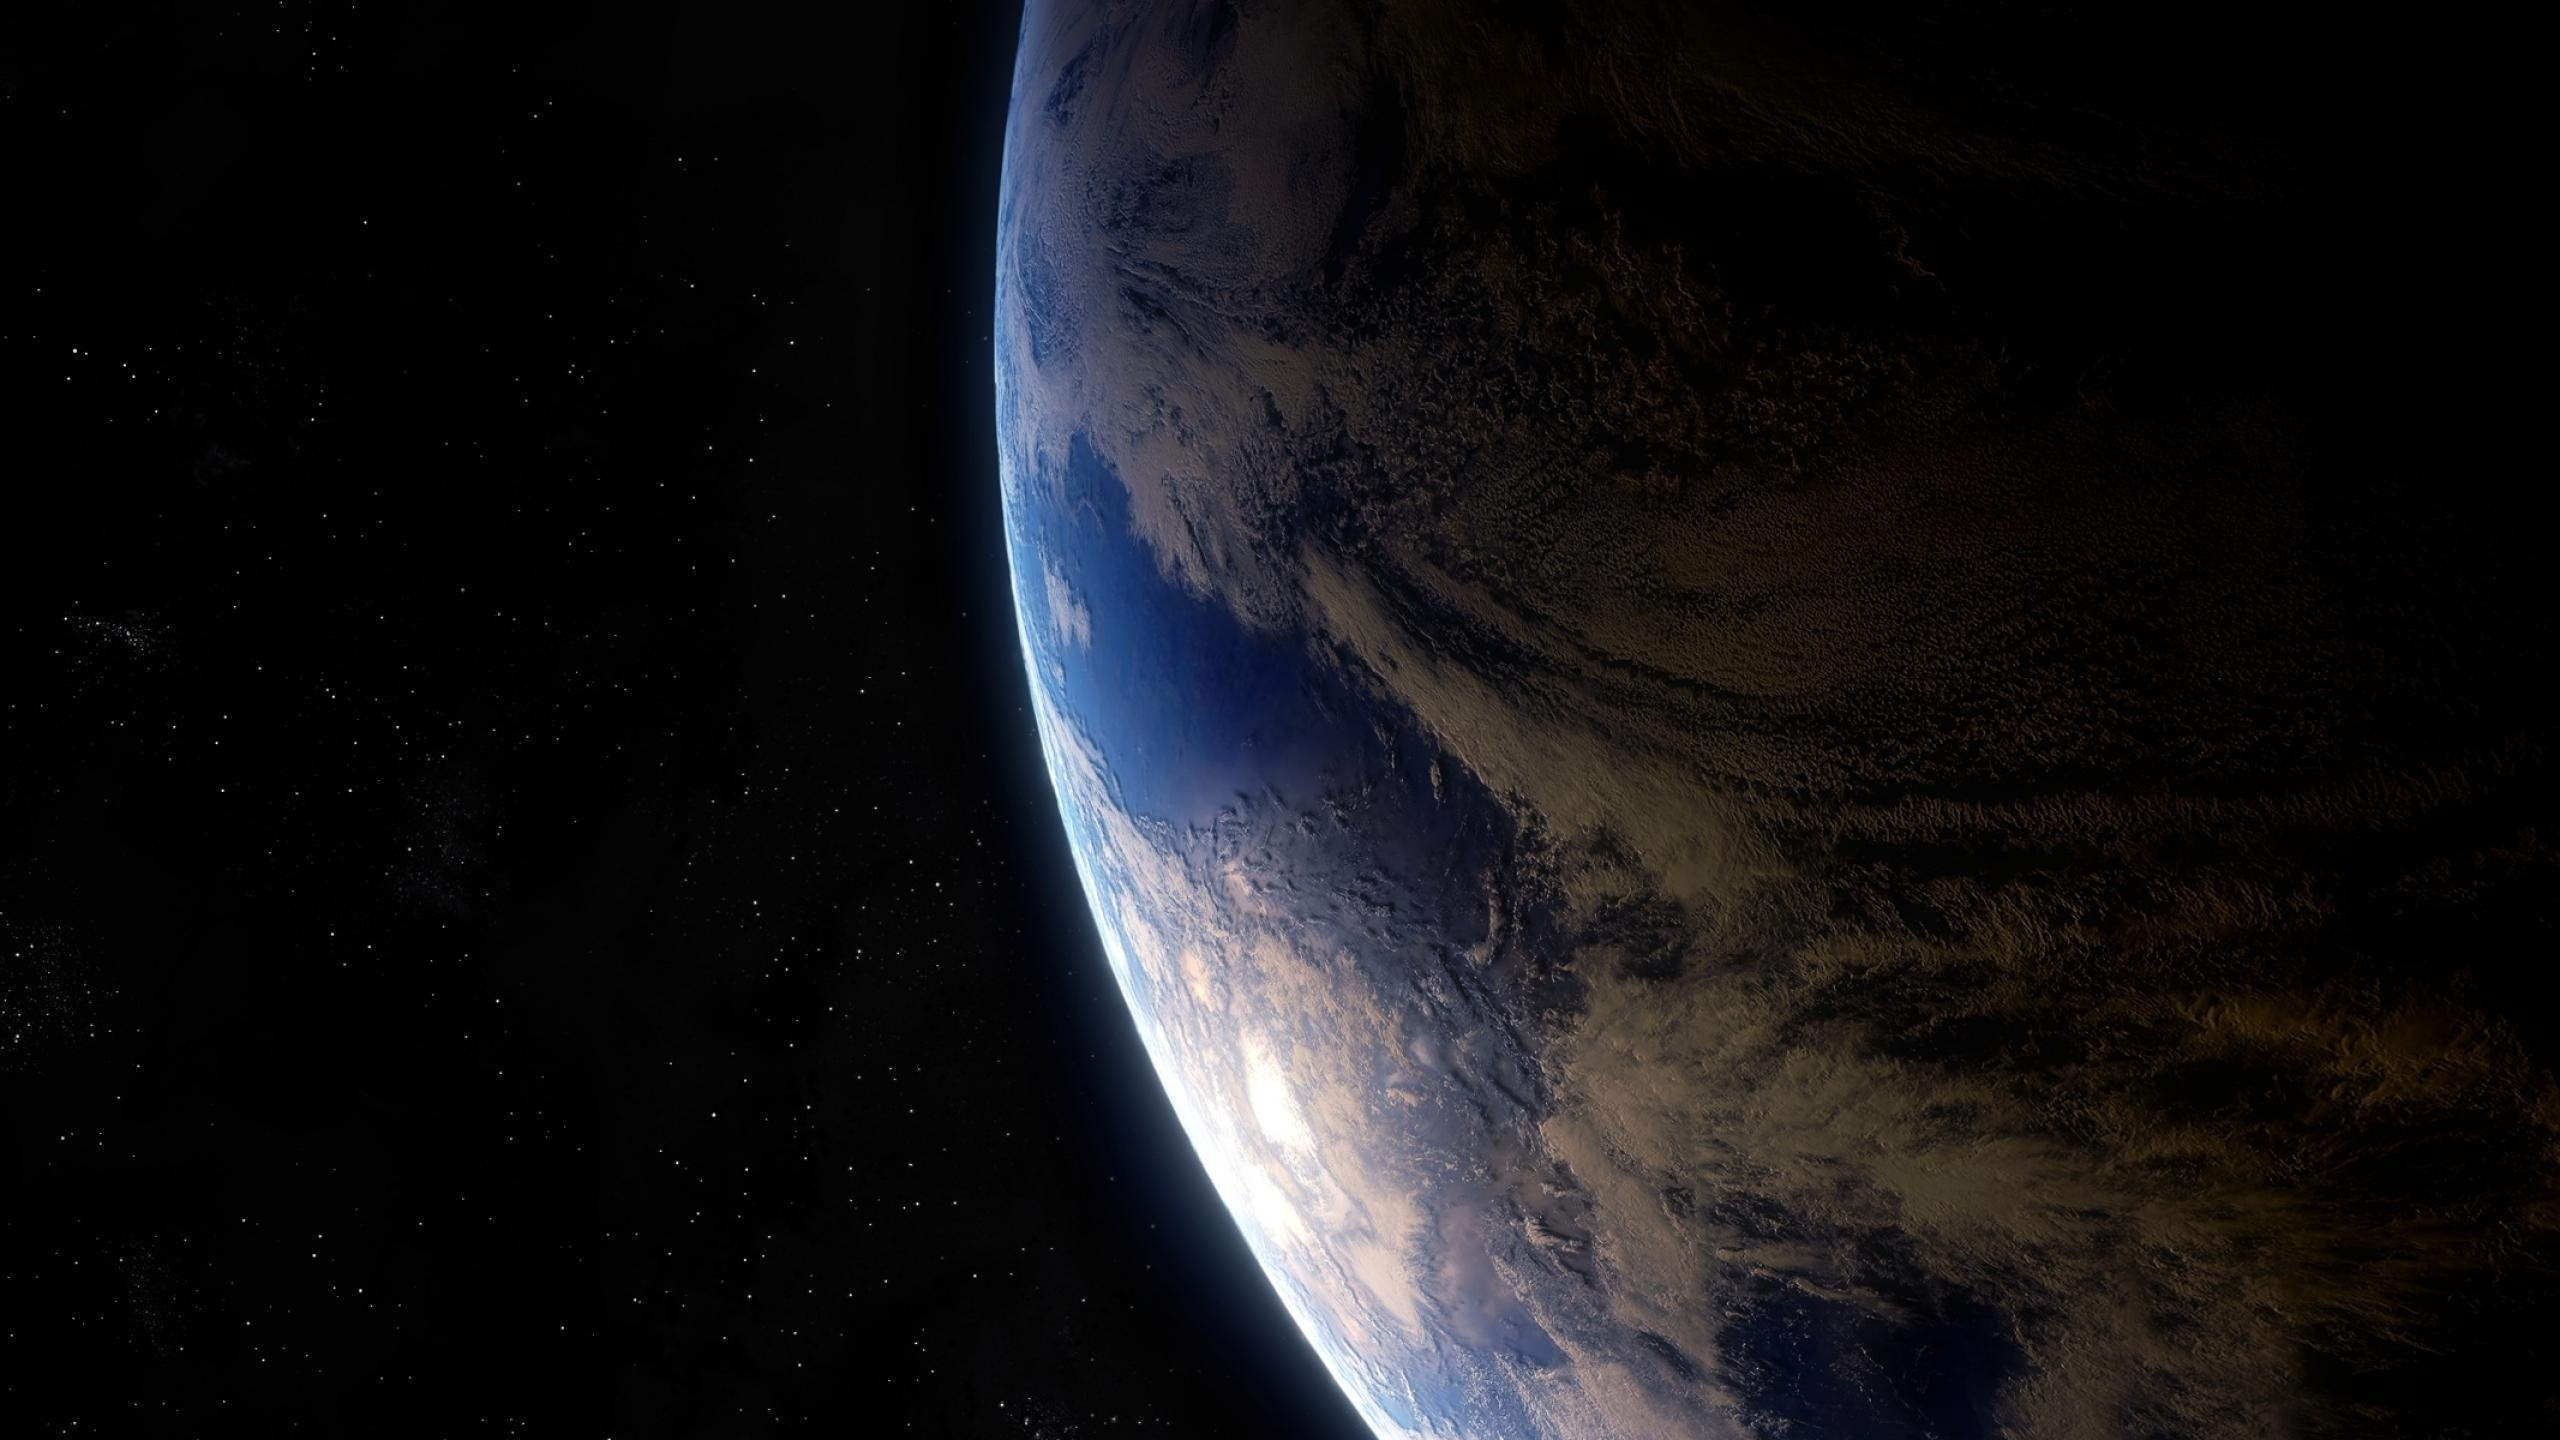 earth and space - HD2560×1440